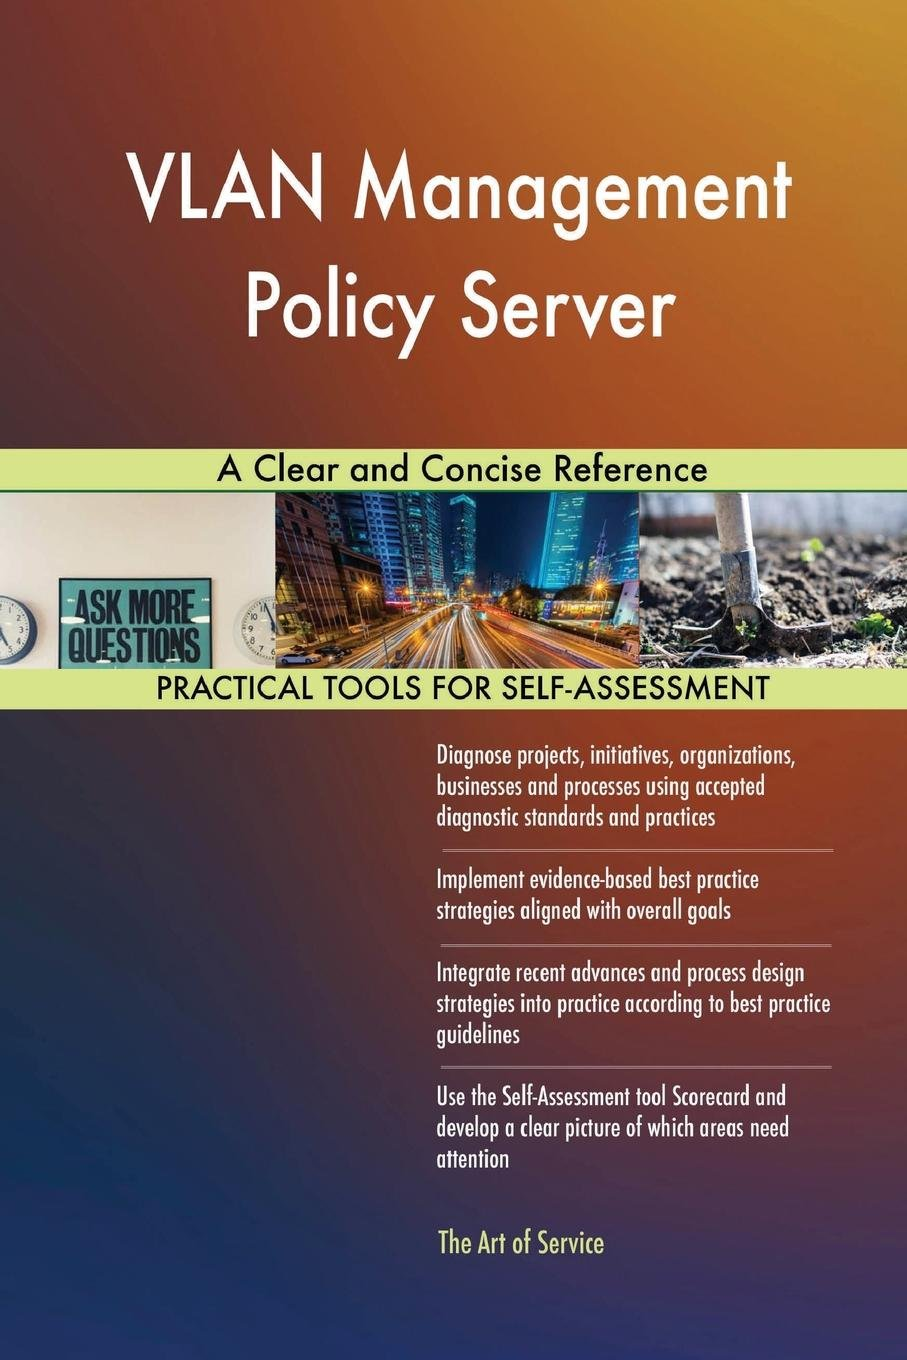 VLAN Management Policy Server a Clear and Concise Reference